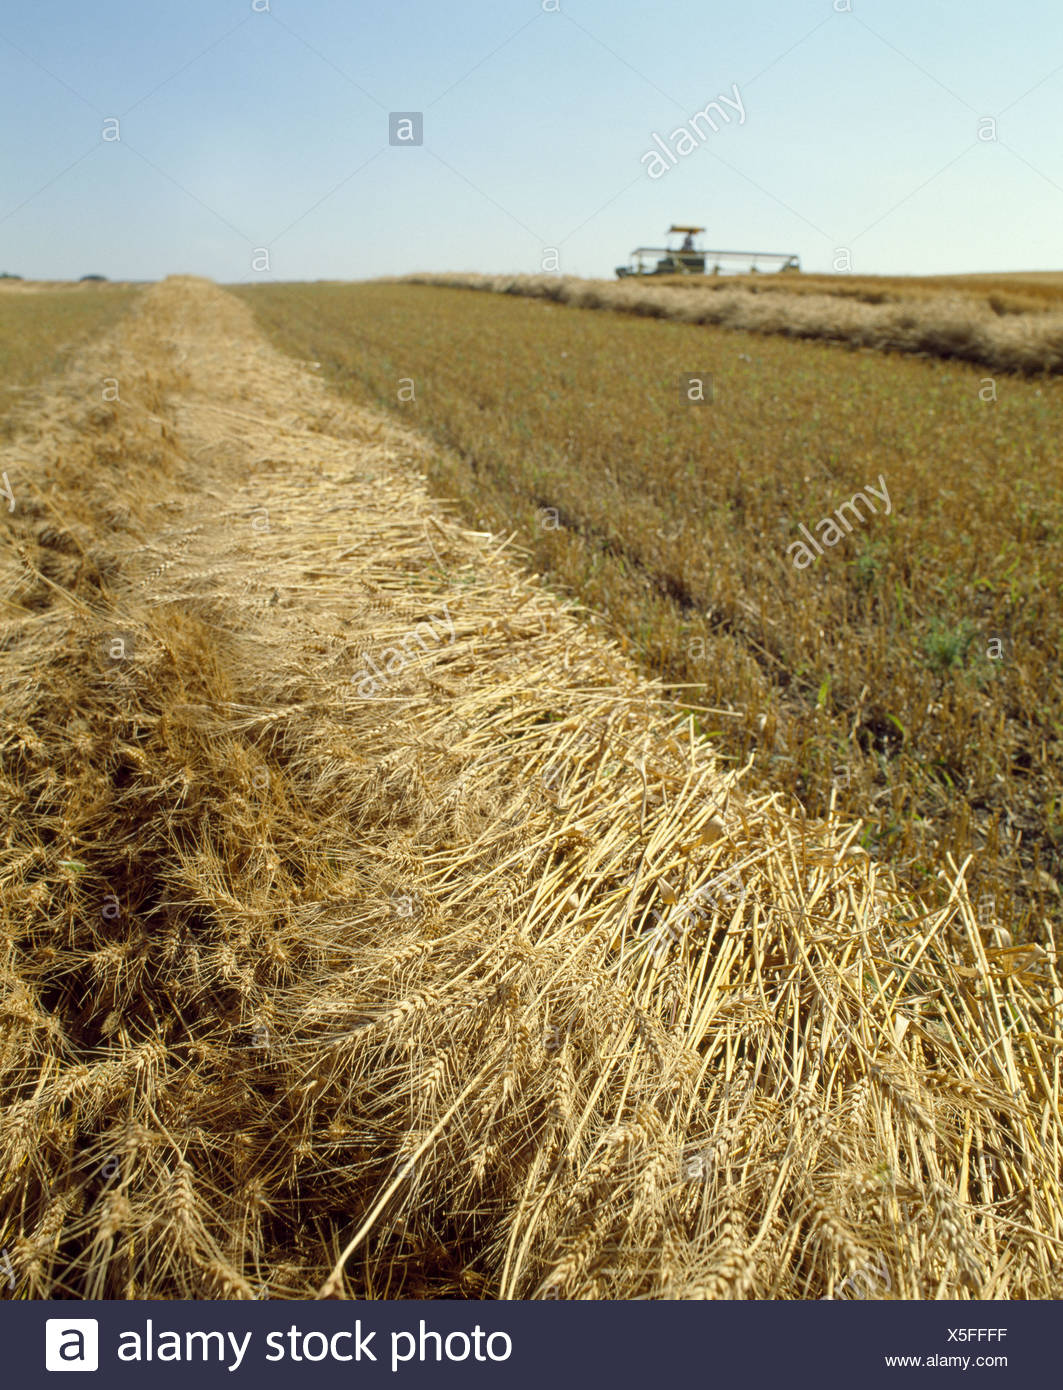 SWATHING EXCELLENT HARD RED SPRING WHEAT - Stock Image